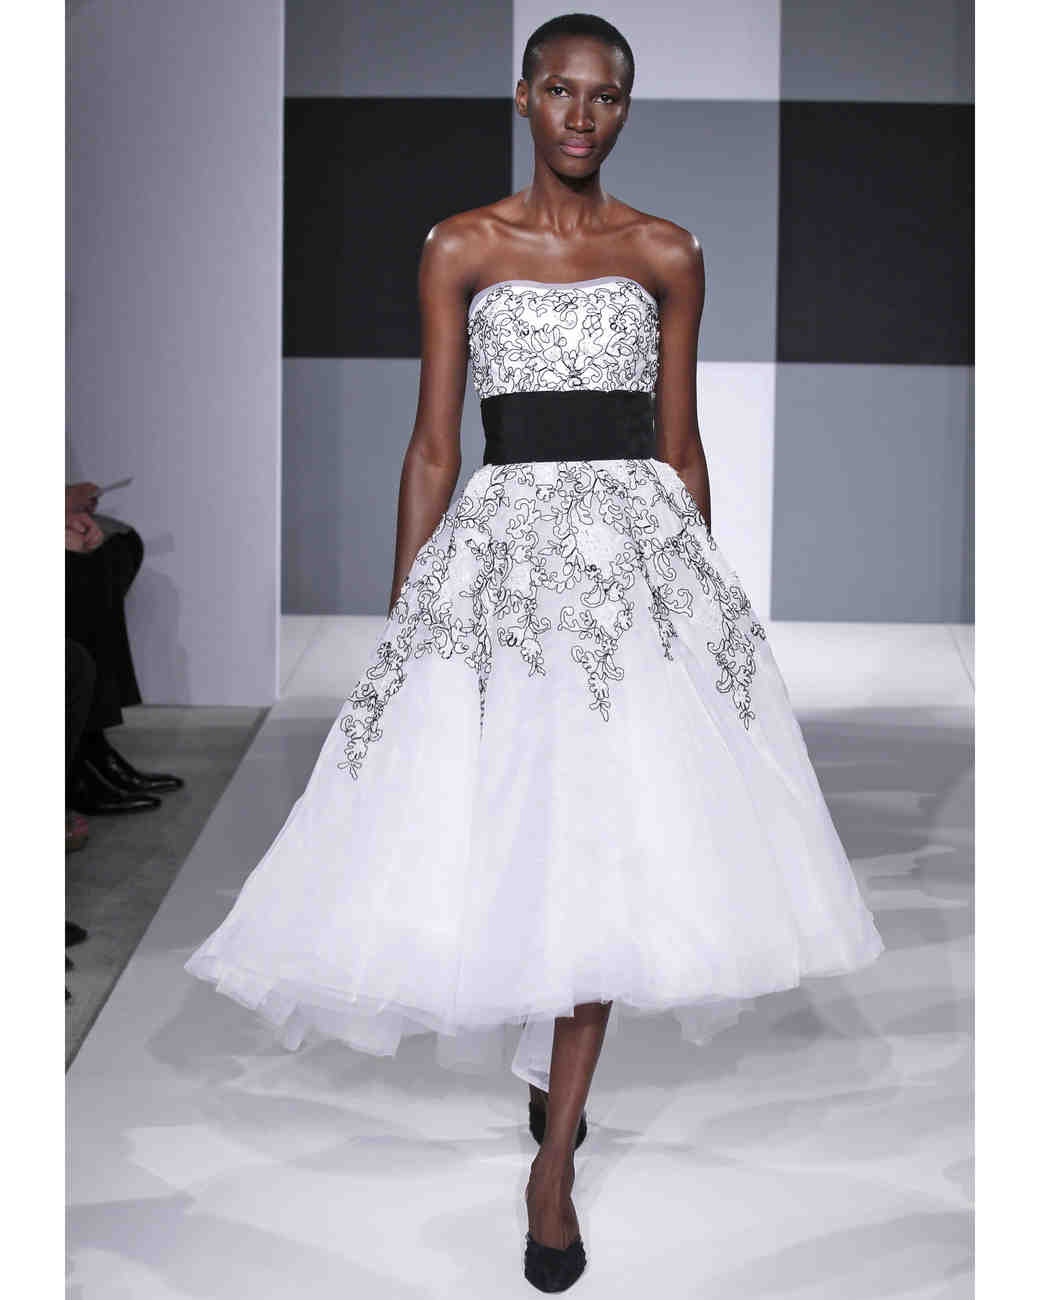 Black-and-White Wedding Dresses, Spring 2013 Bridal Fashion Week ...